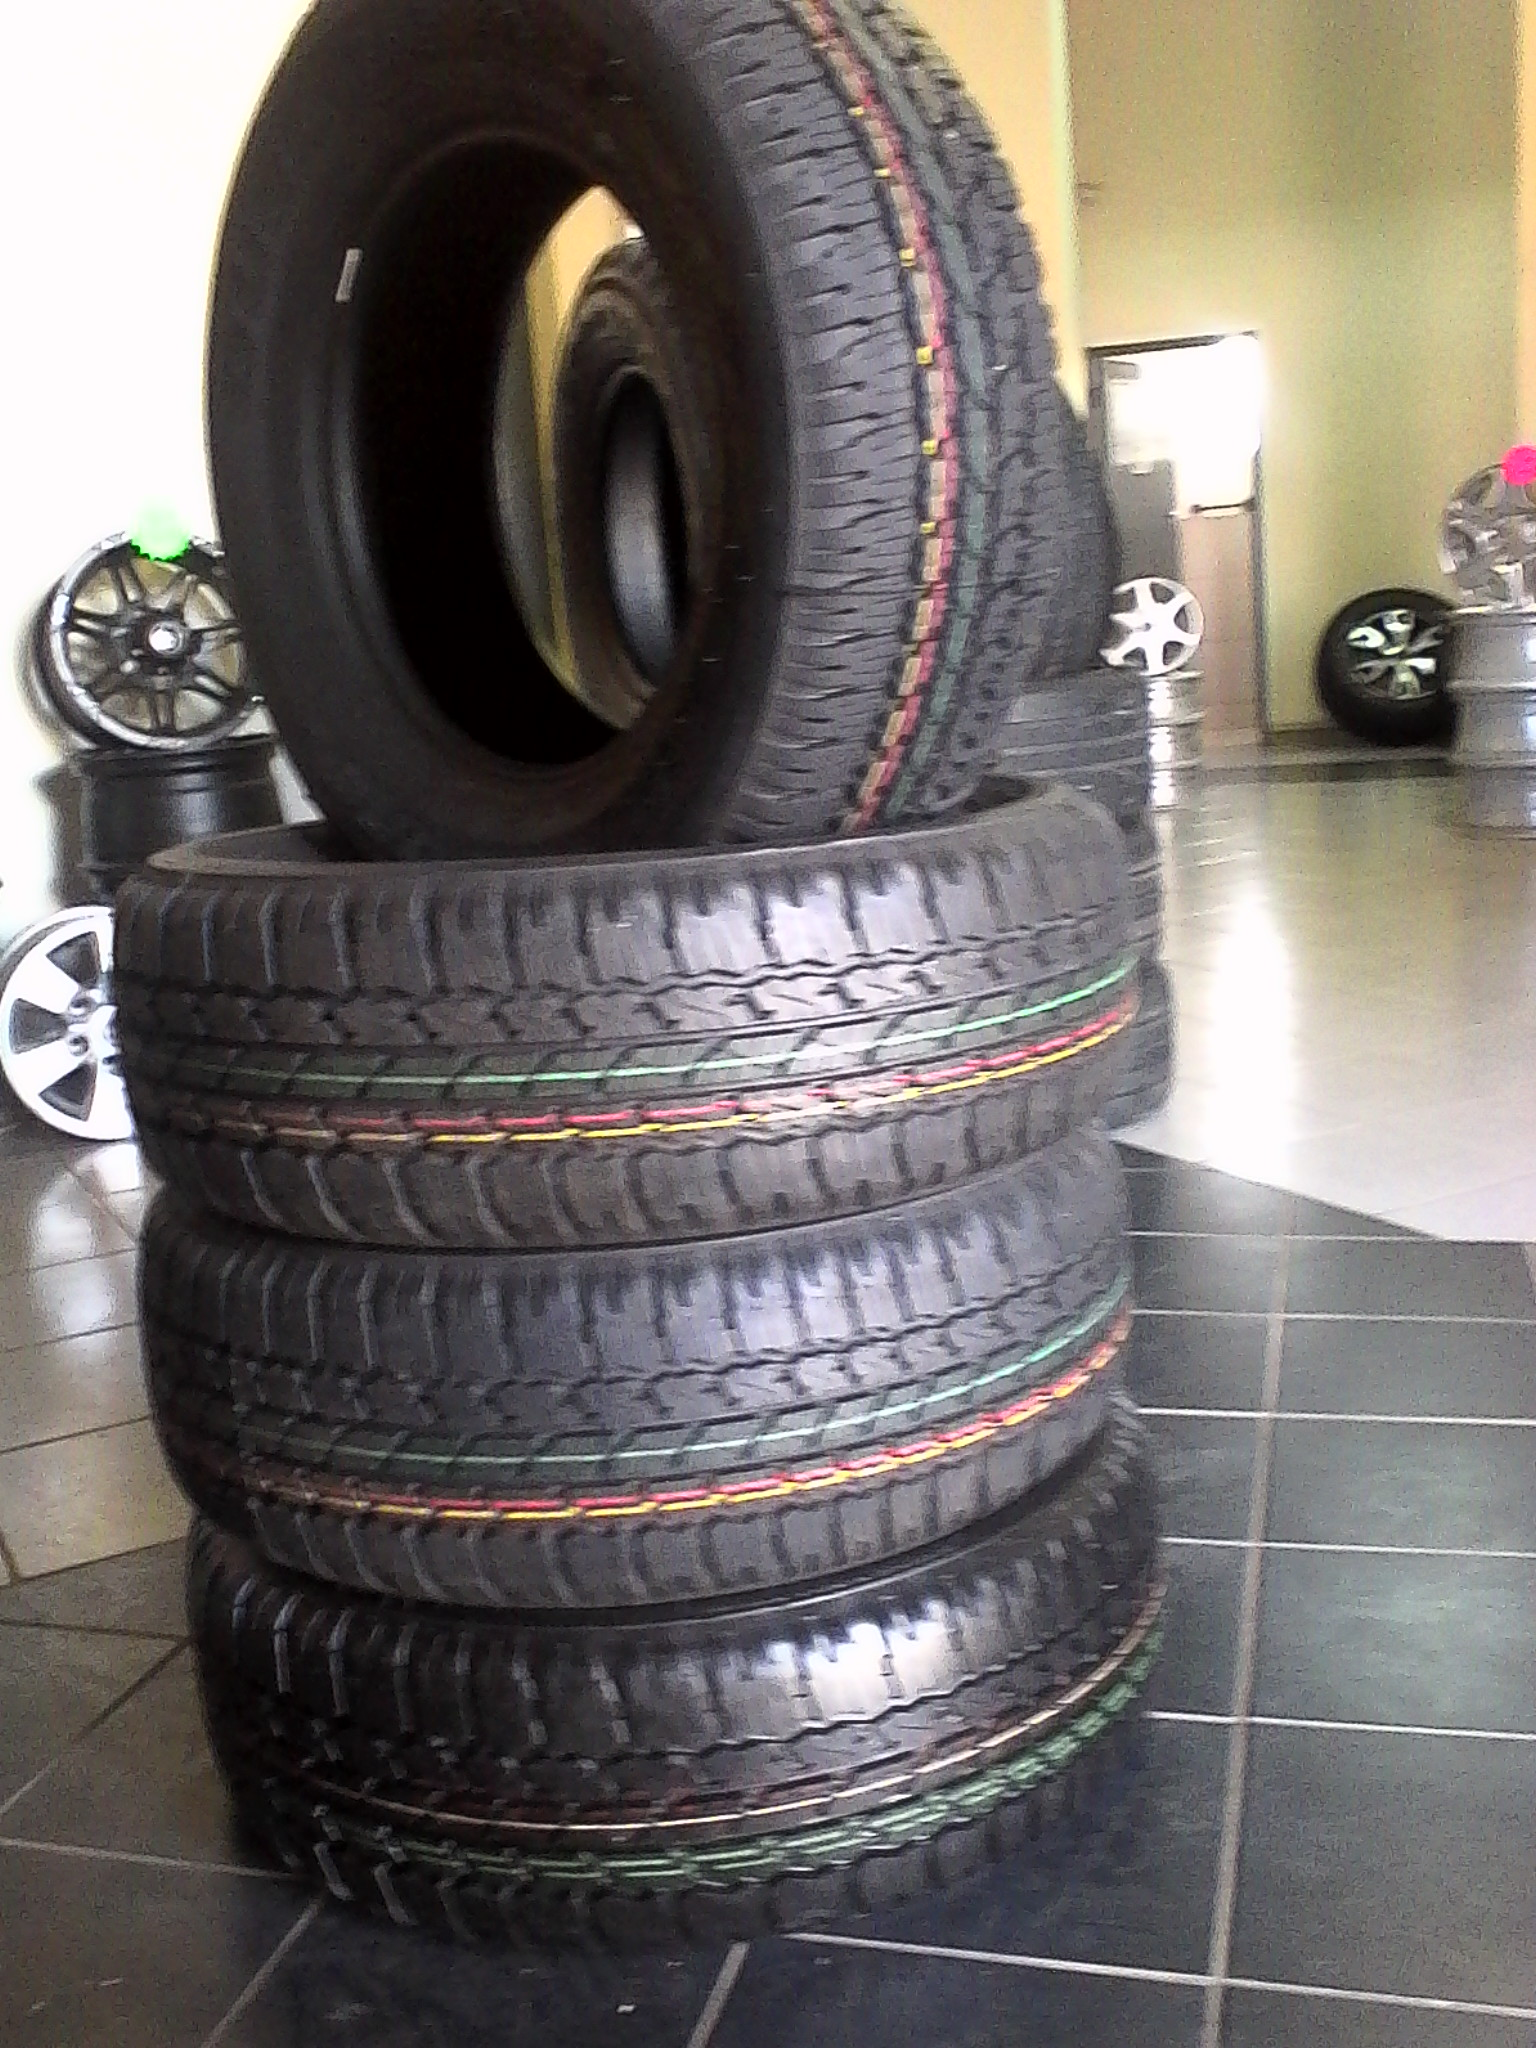 Bridgestone dueler A/T 265/65/R17 Tyres for R6499 {Set of 4} prices include fitment.